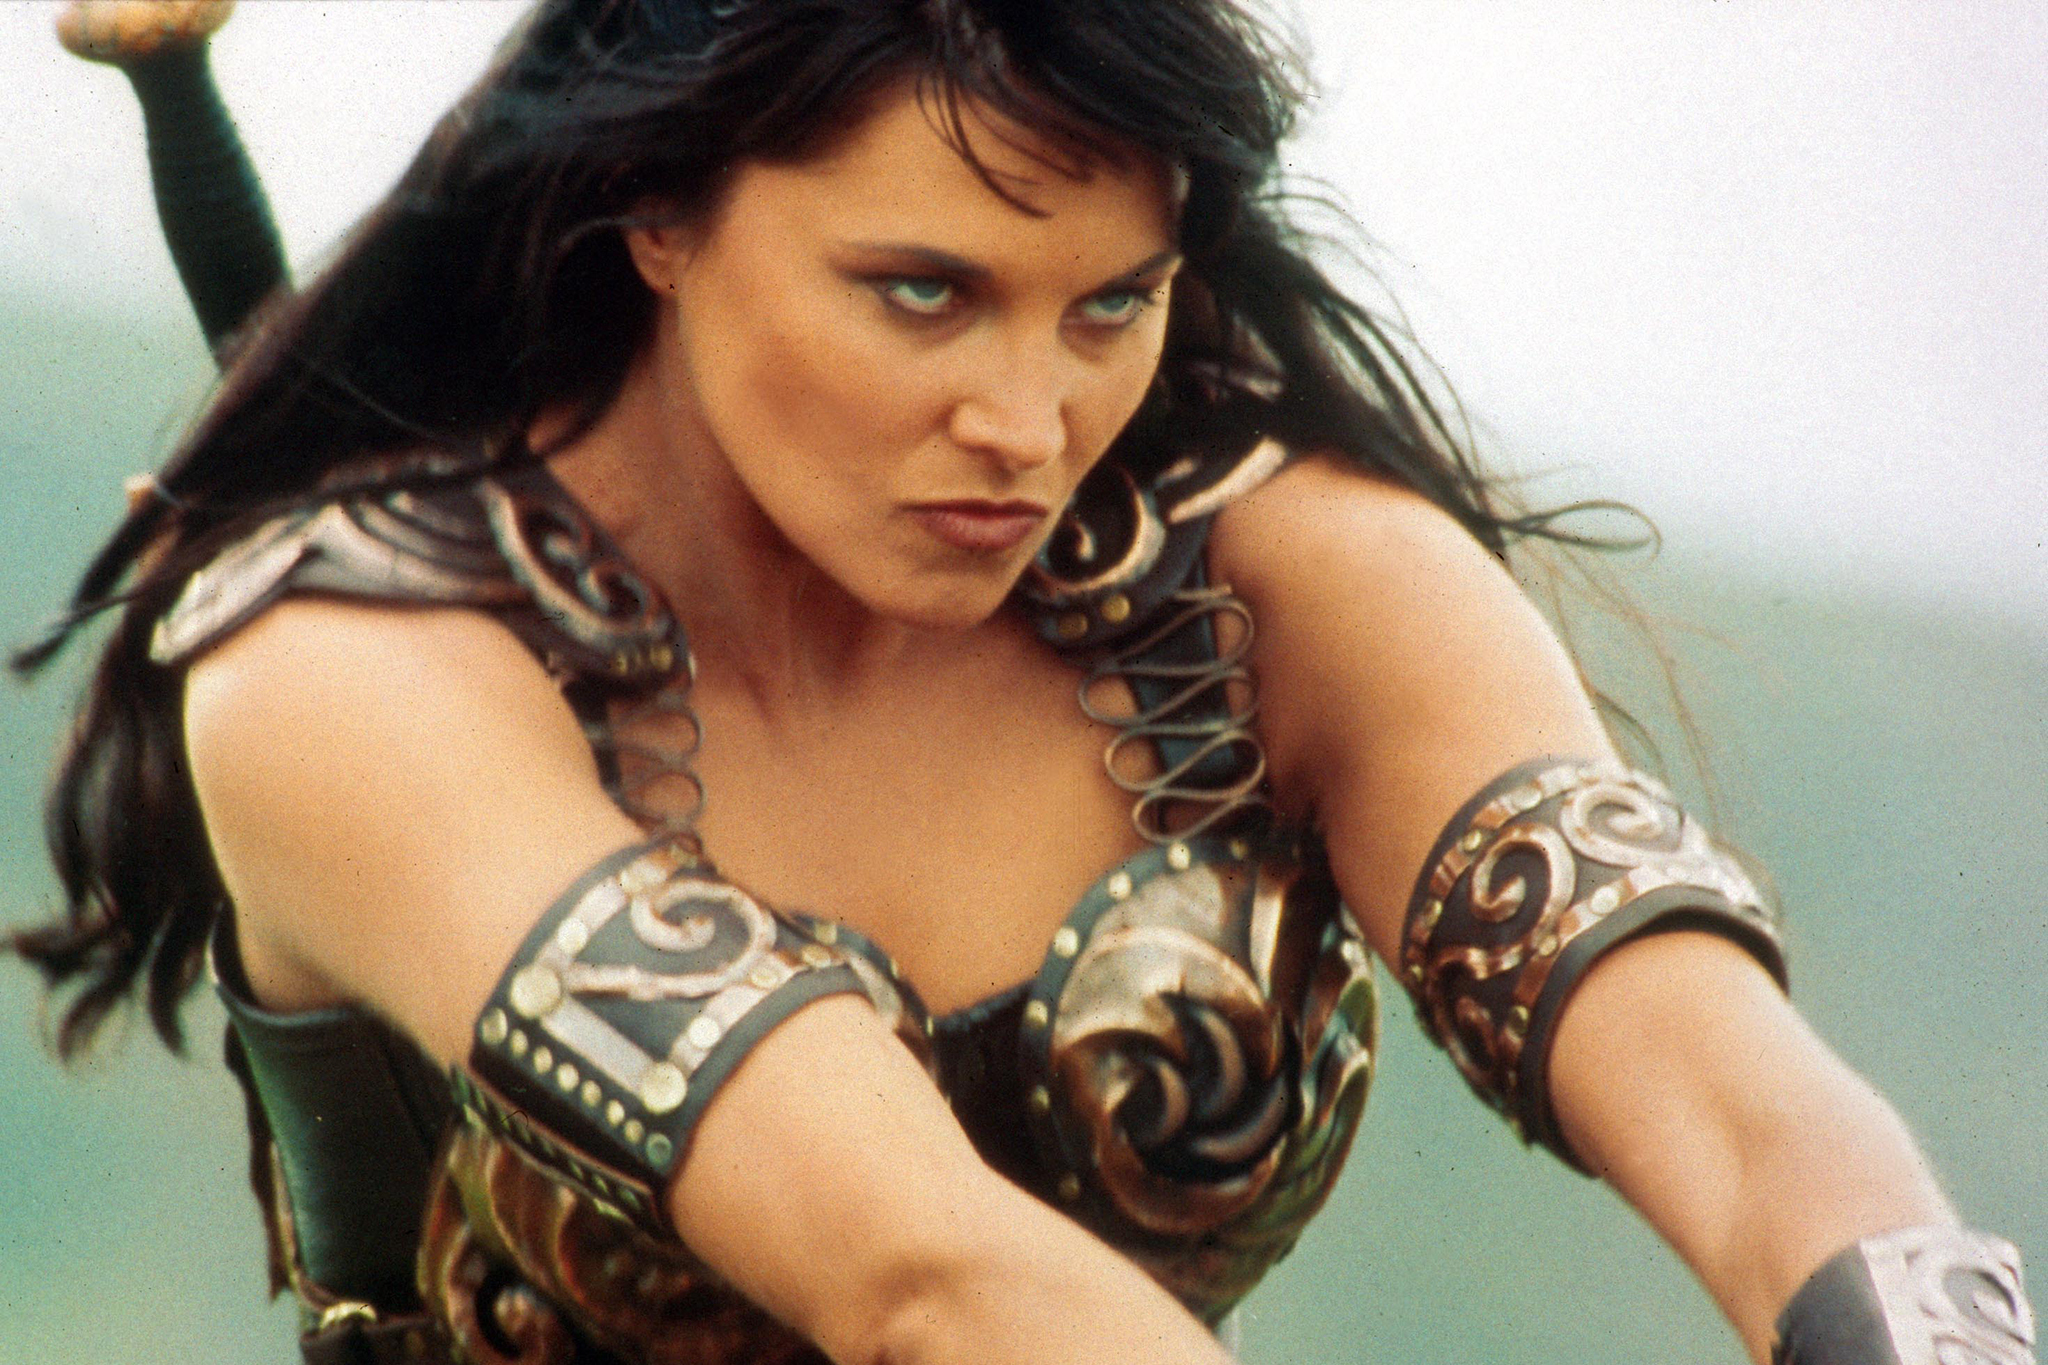 Xena (Lucy Lawless, Xena: Warrior Princess)